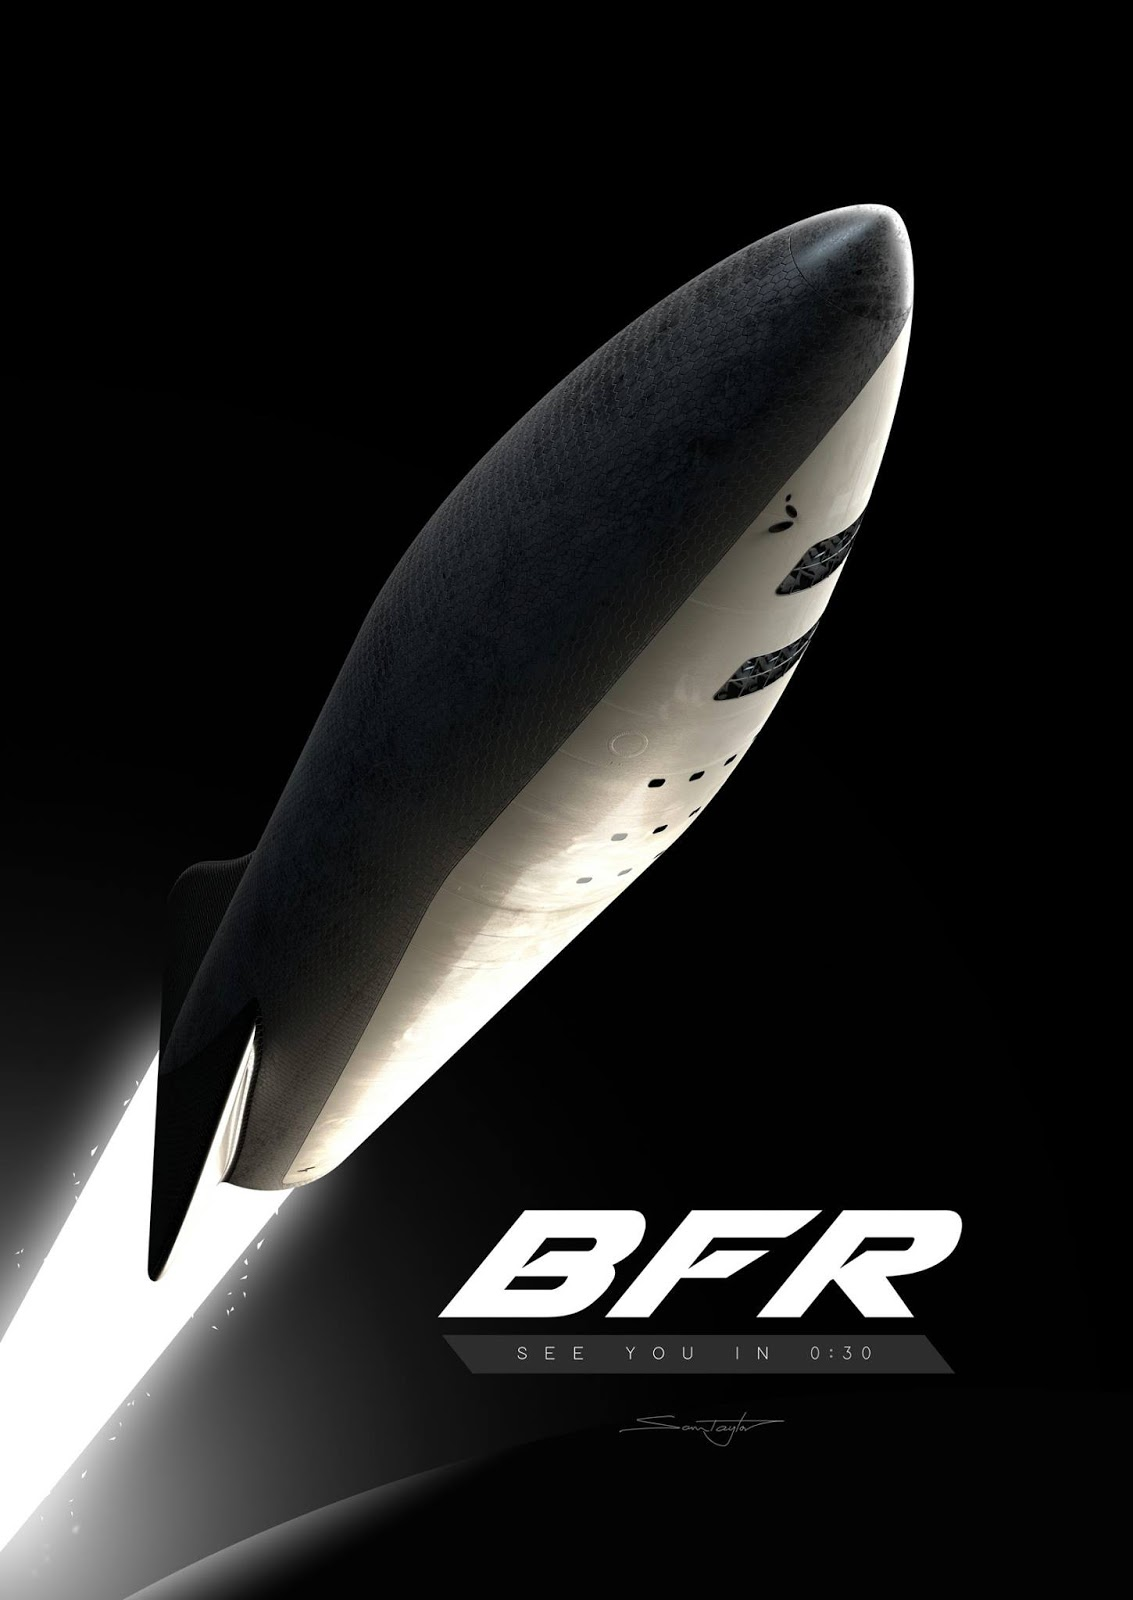 Poster with SpaceX BFR spaceship by Sam Taylor